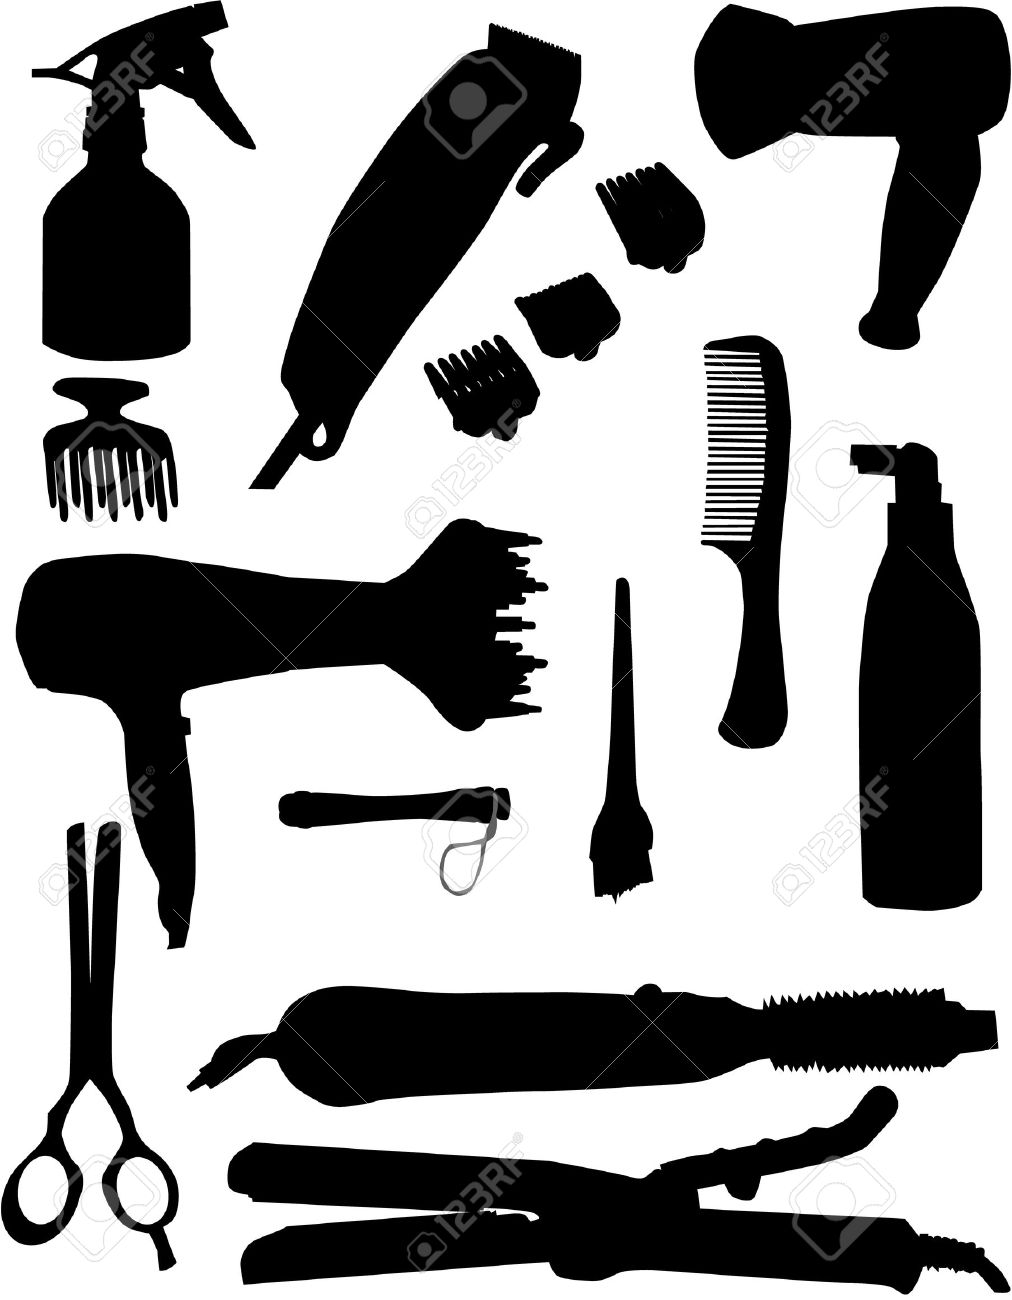 Hair Salon Tools Cliparts.